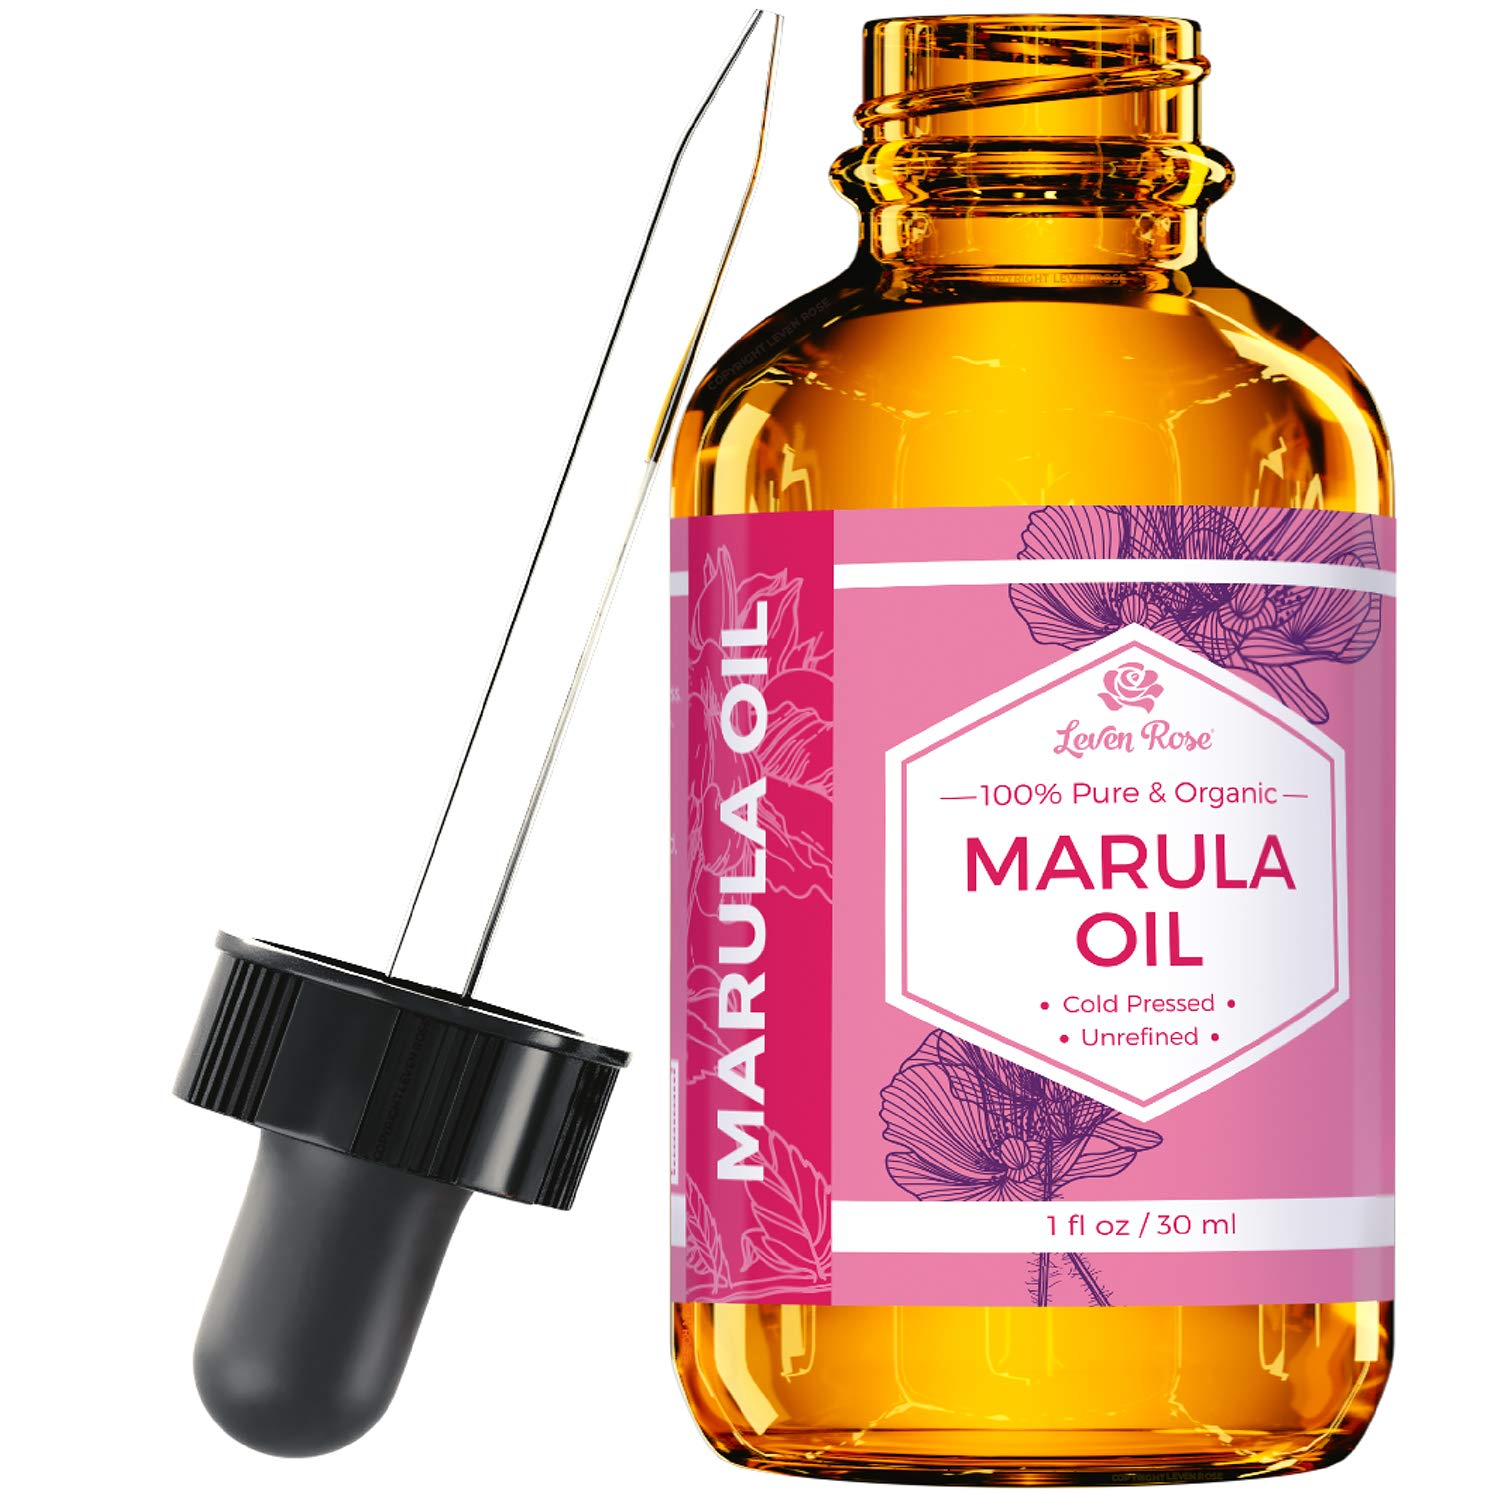 Marula Oil by Leven Rose Pure Organic, Extra Virgin, Cold Pressed, All Natural Face, Dry Skin and Body Moisturizer and Damaged Hair Treatment 1 oz